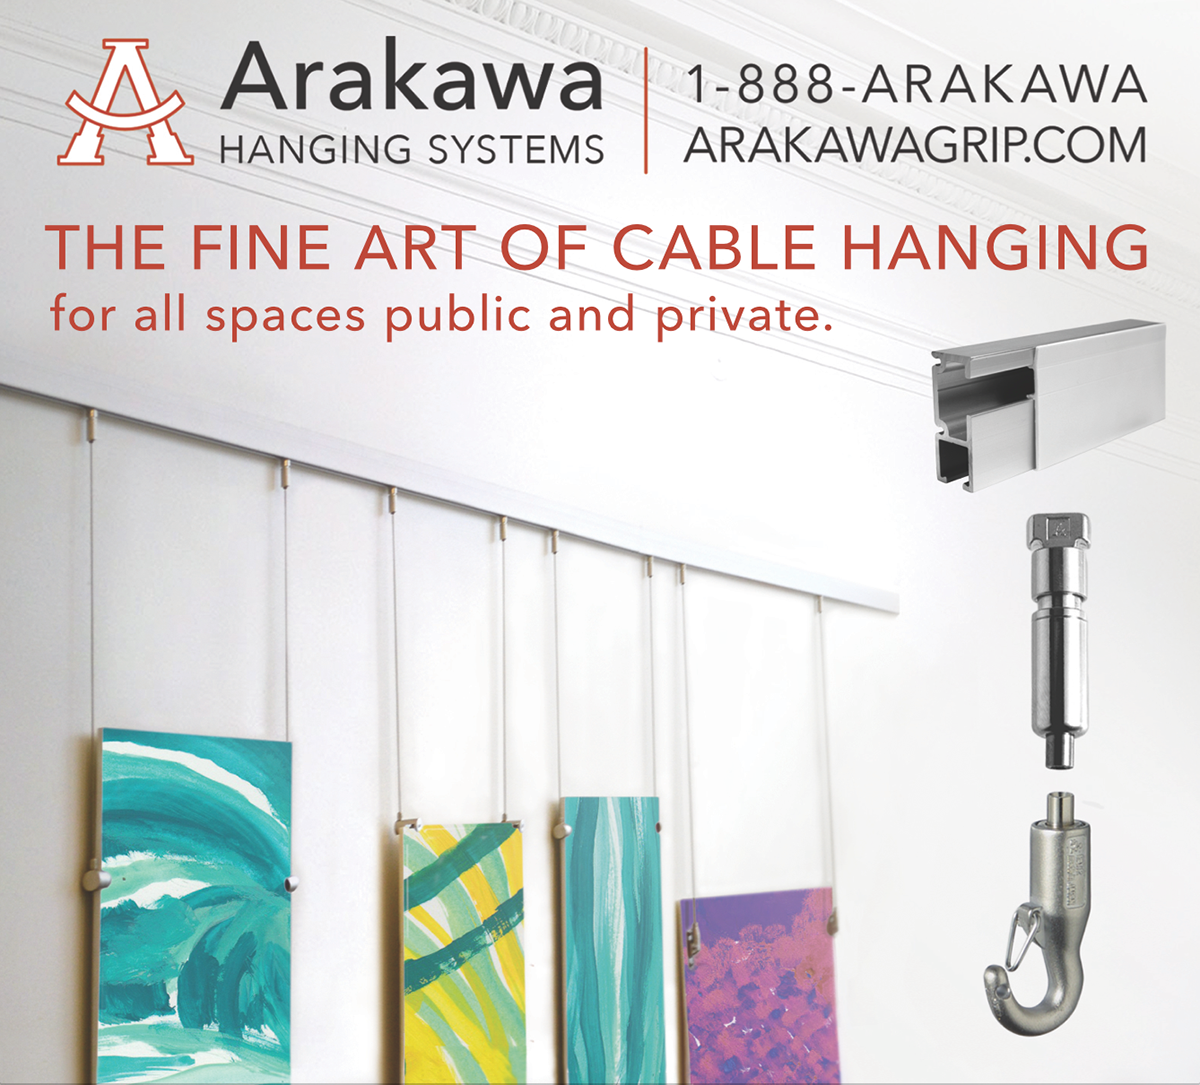 Arakawa Print Ads On Behance